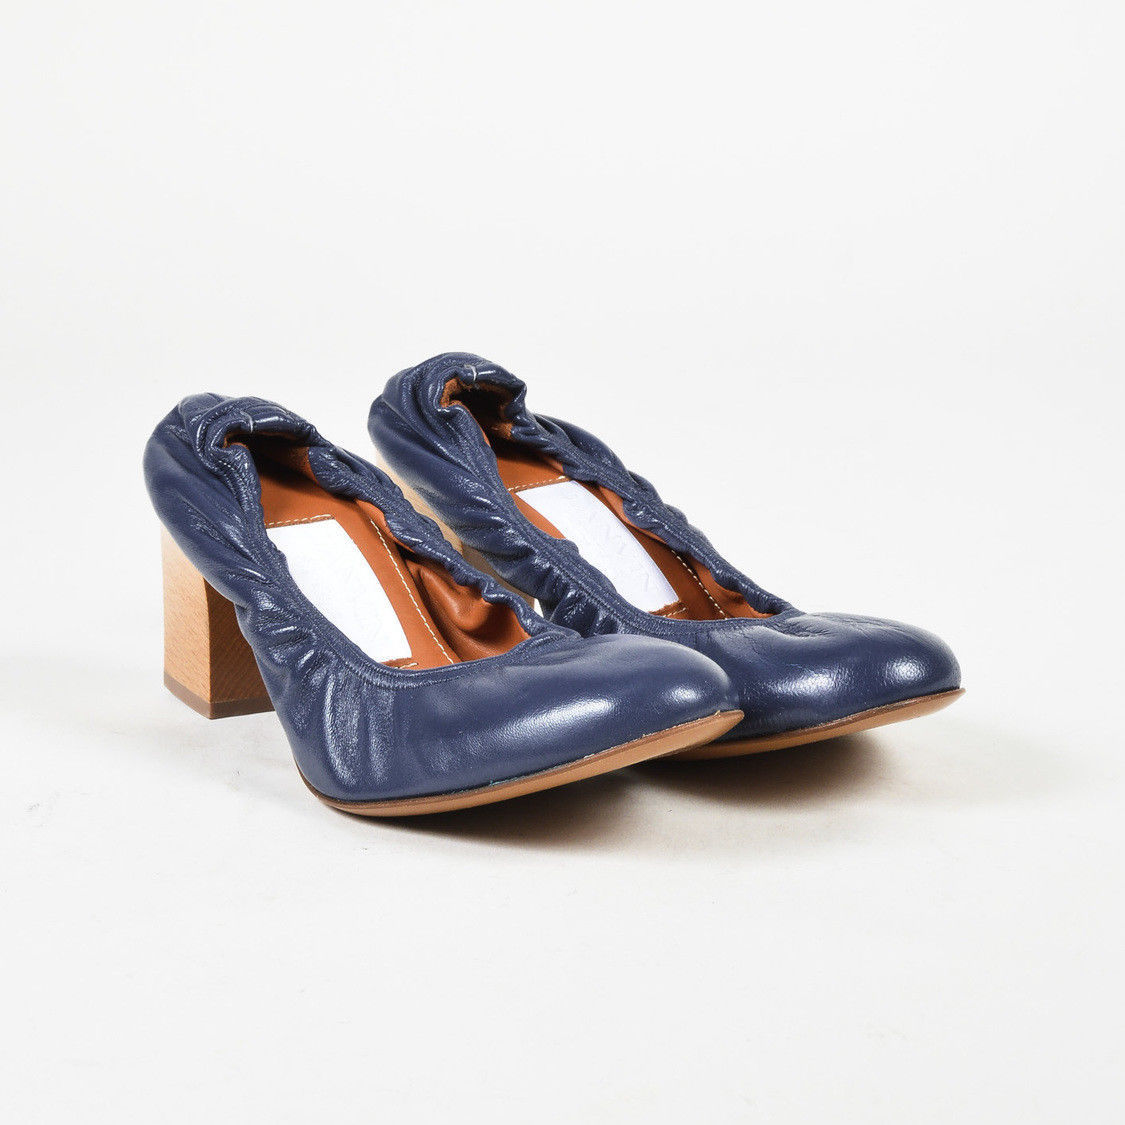 Lanvin Blue Leather Rounded Toe Block Heel Pumps SZ 39